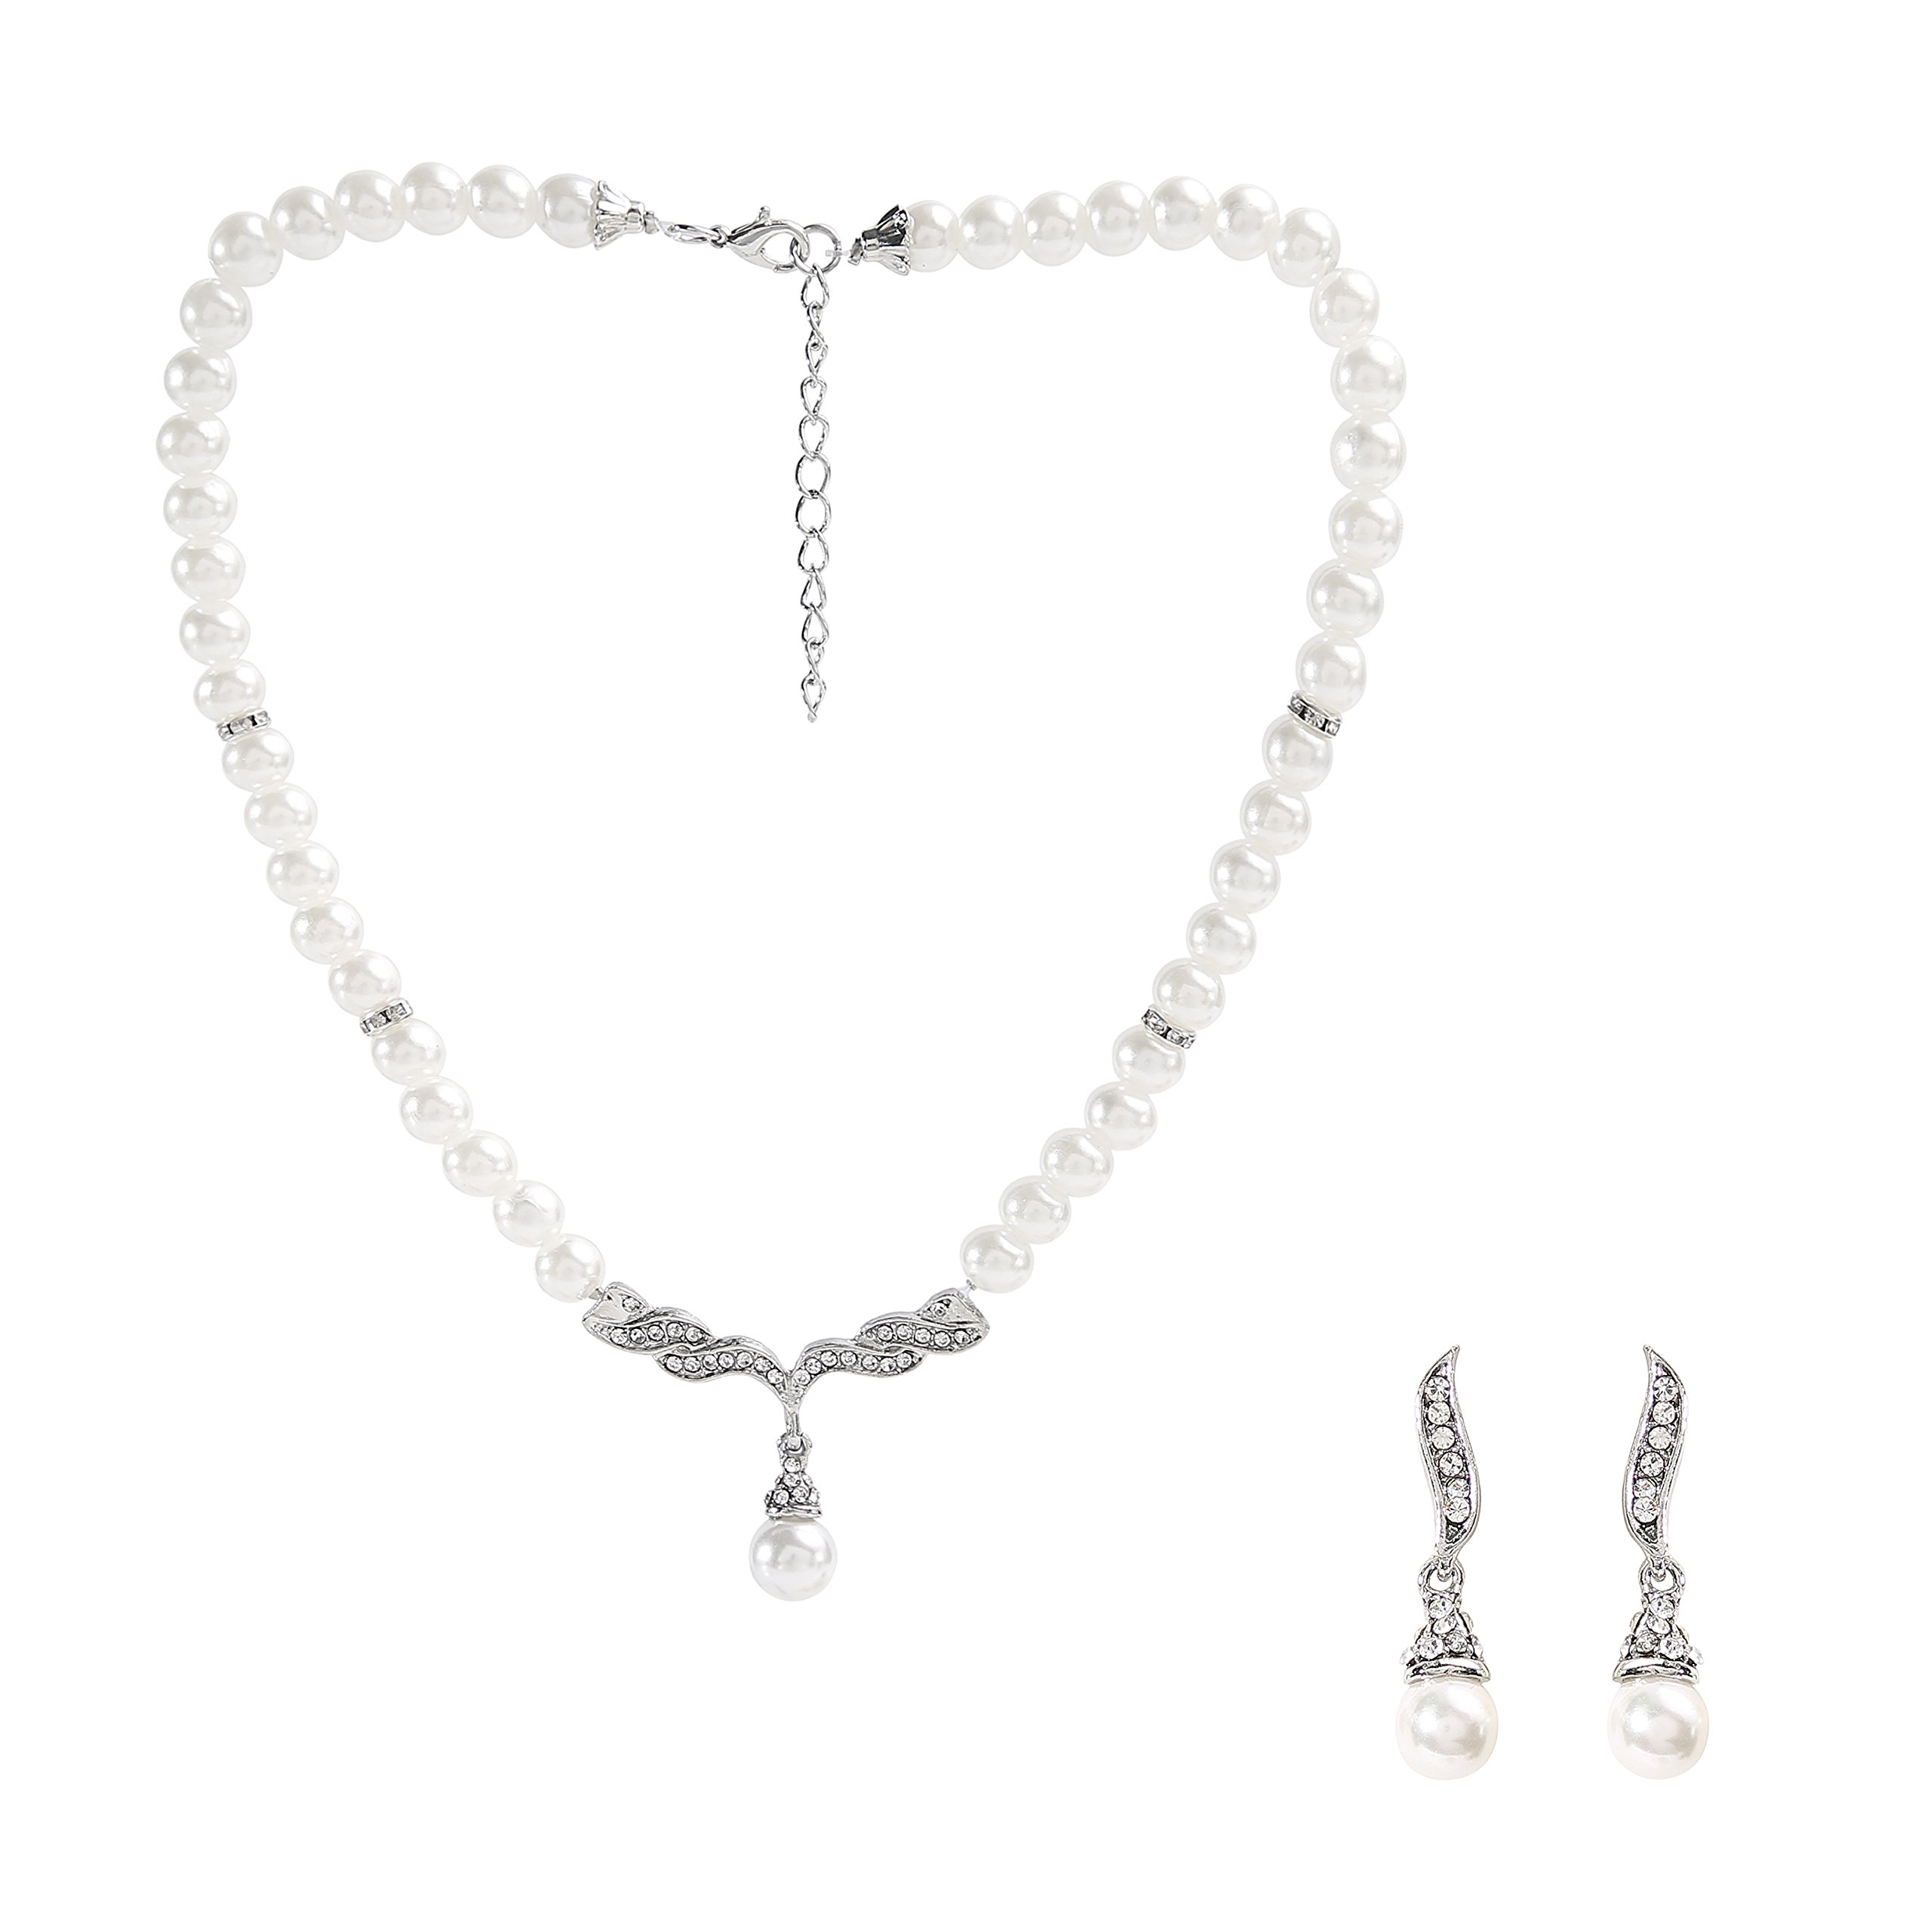 Metme 1920s Pearls Rhinestone Necklace Earrings Accessories Set Great Gatsby Party Jewelry